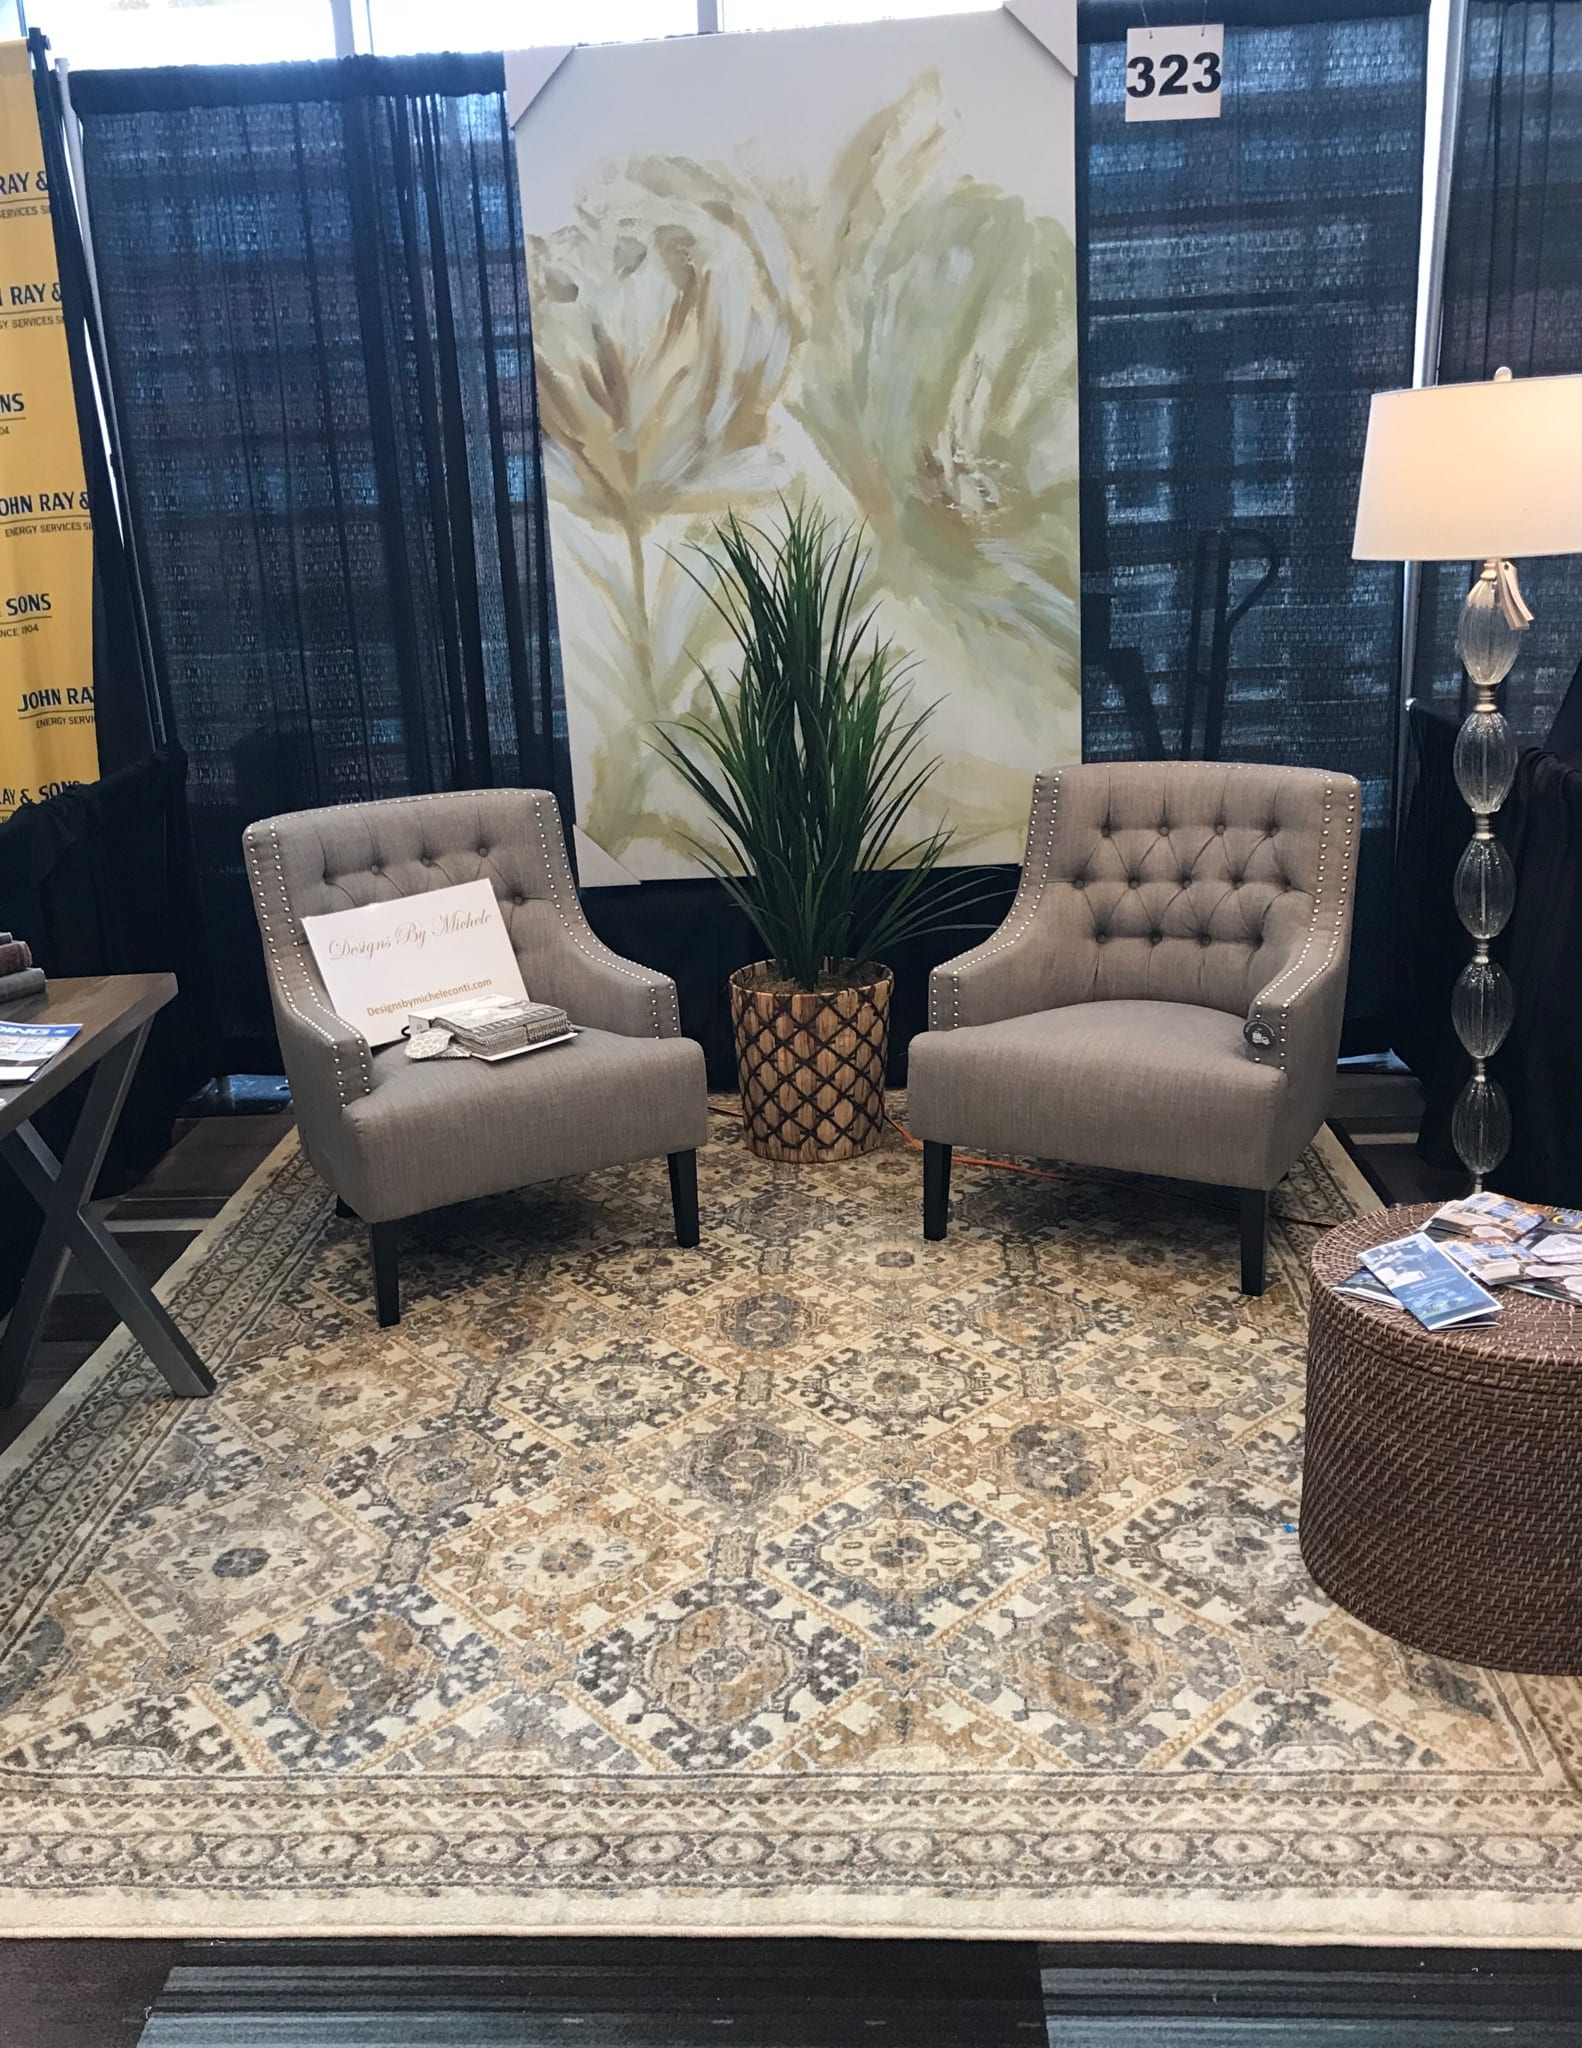 Blog - Home & Garden Show | Albany & Clifton Park, NY | Times Union Home Expo Design on home brand, home event, home improvem en, home improve emt, home laser, home plans coast, home and garden television, home training,